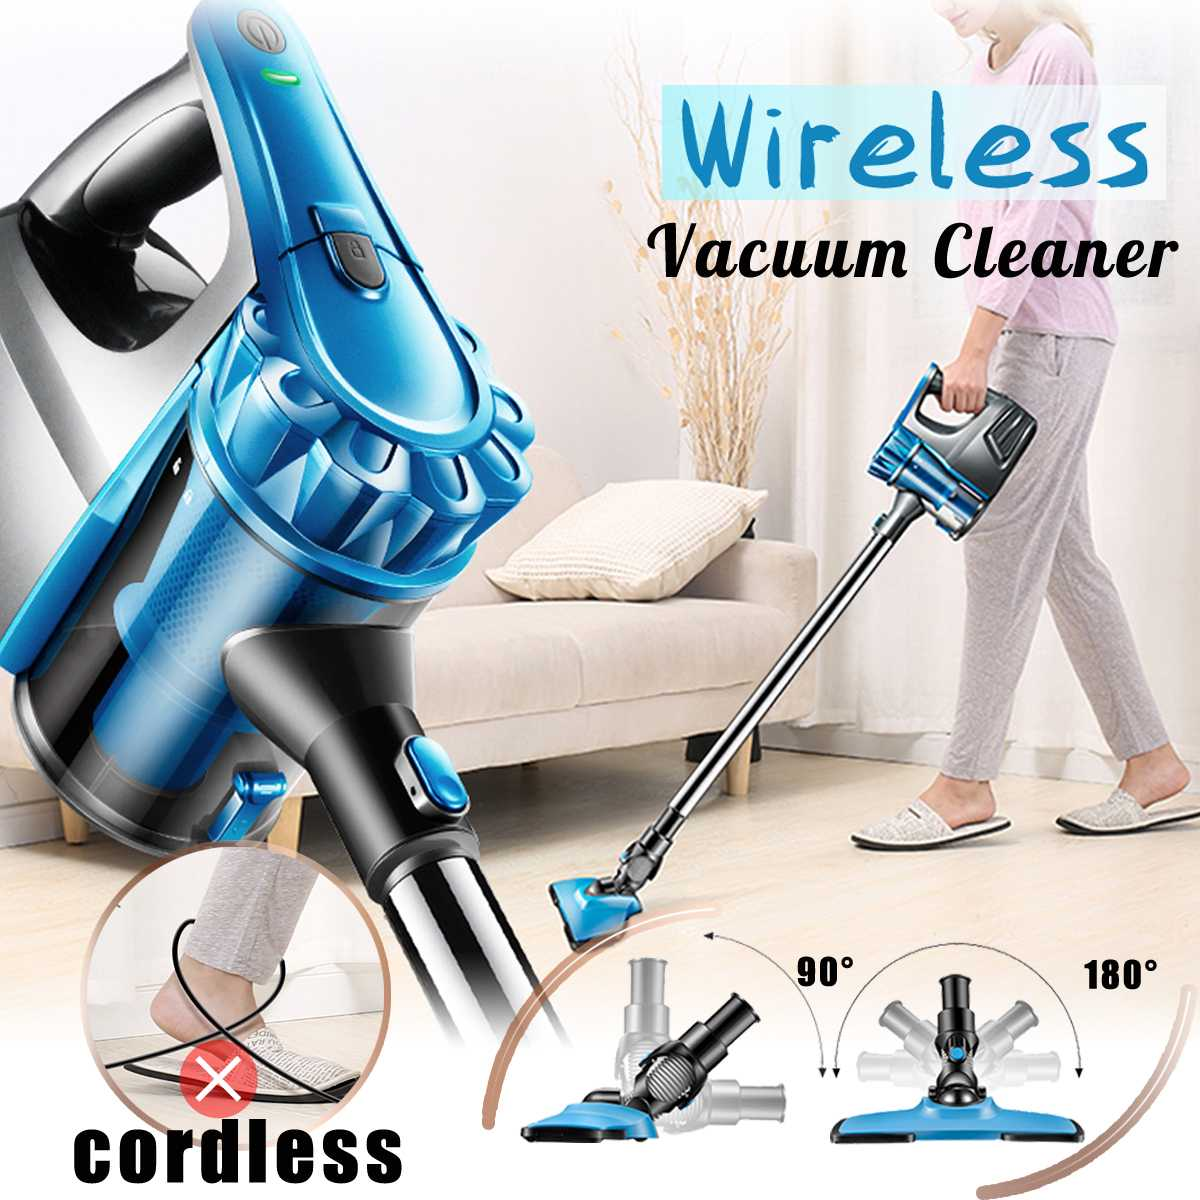 2 in 1 100-240V 130W Corded Handheld Home &Commercial Vacuum Cleaner